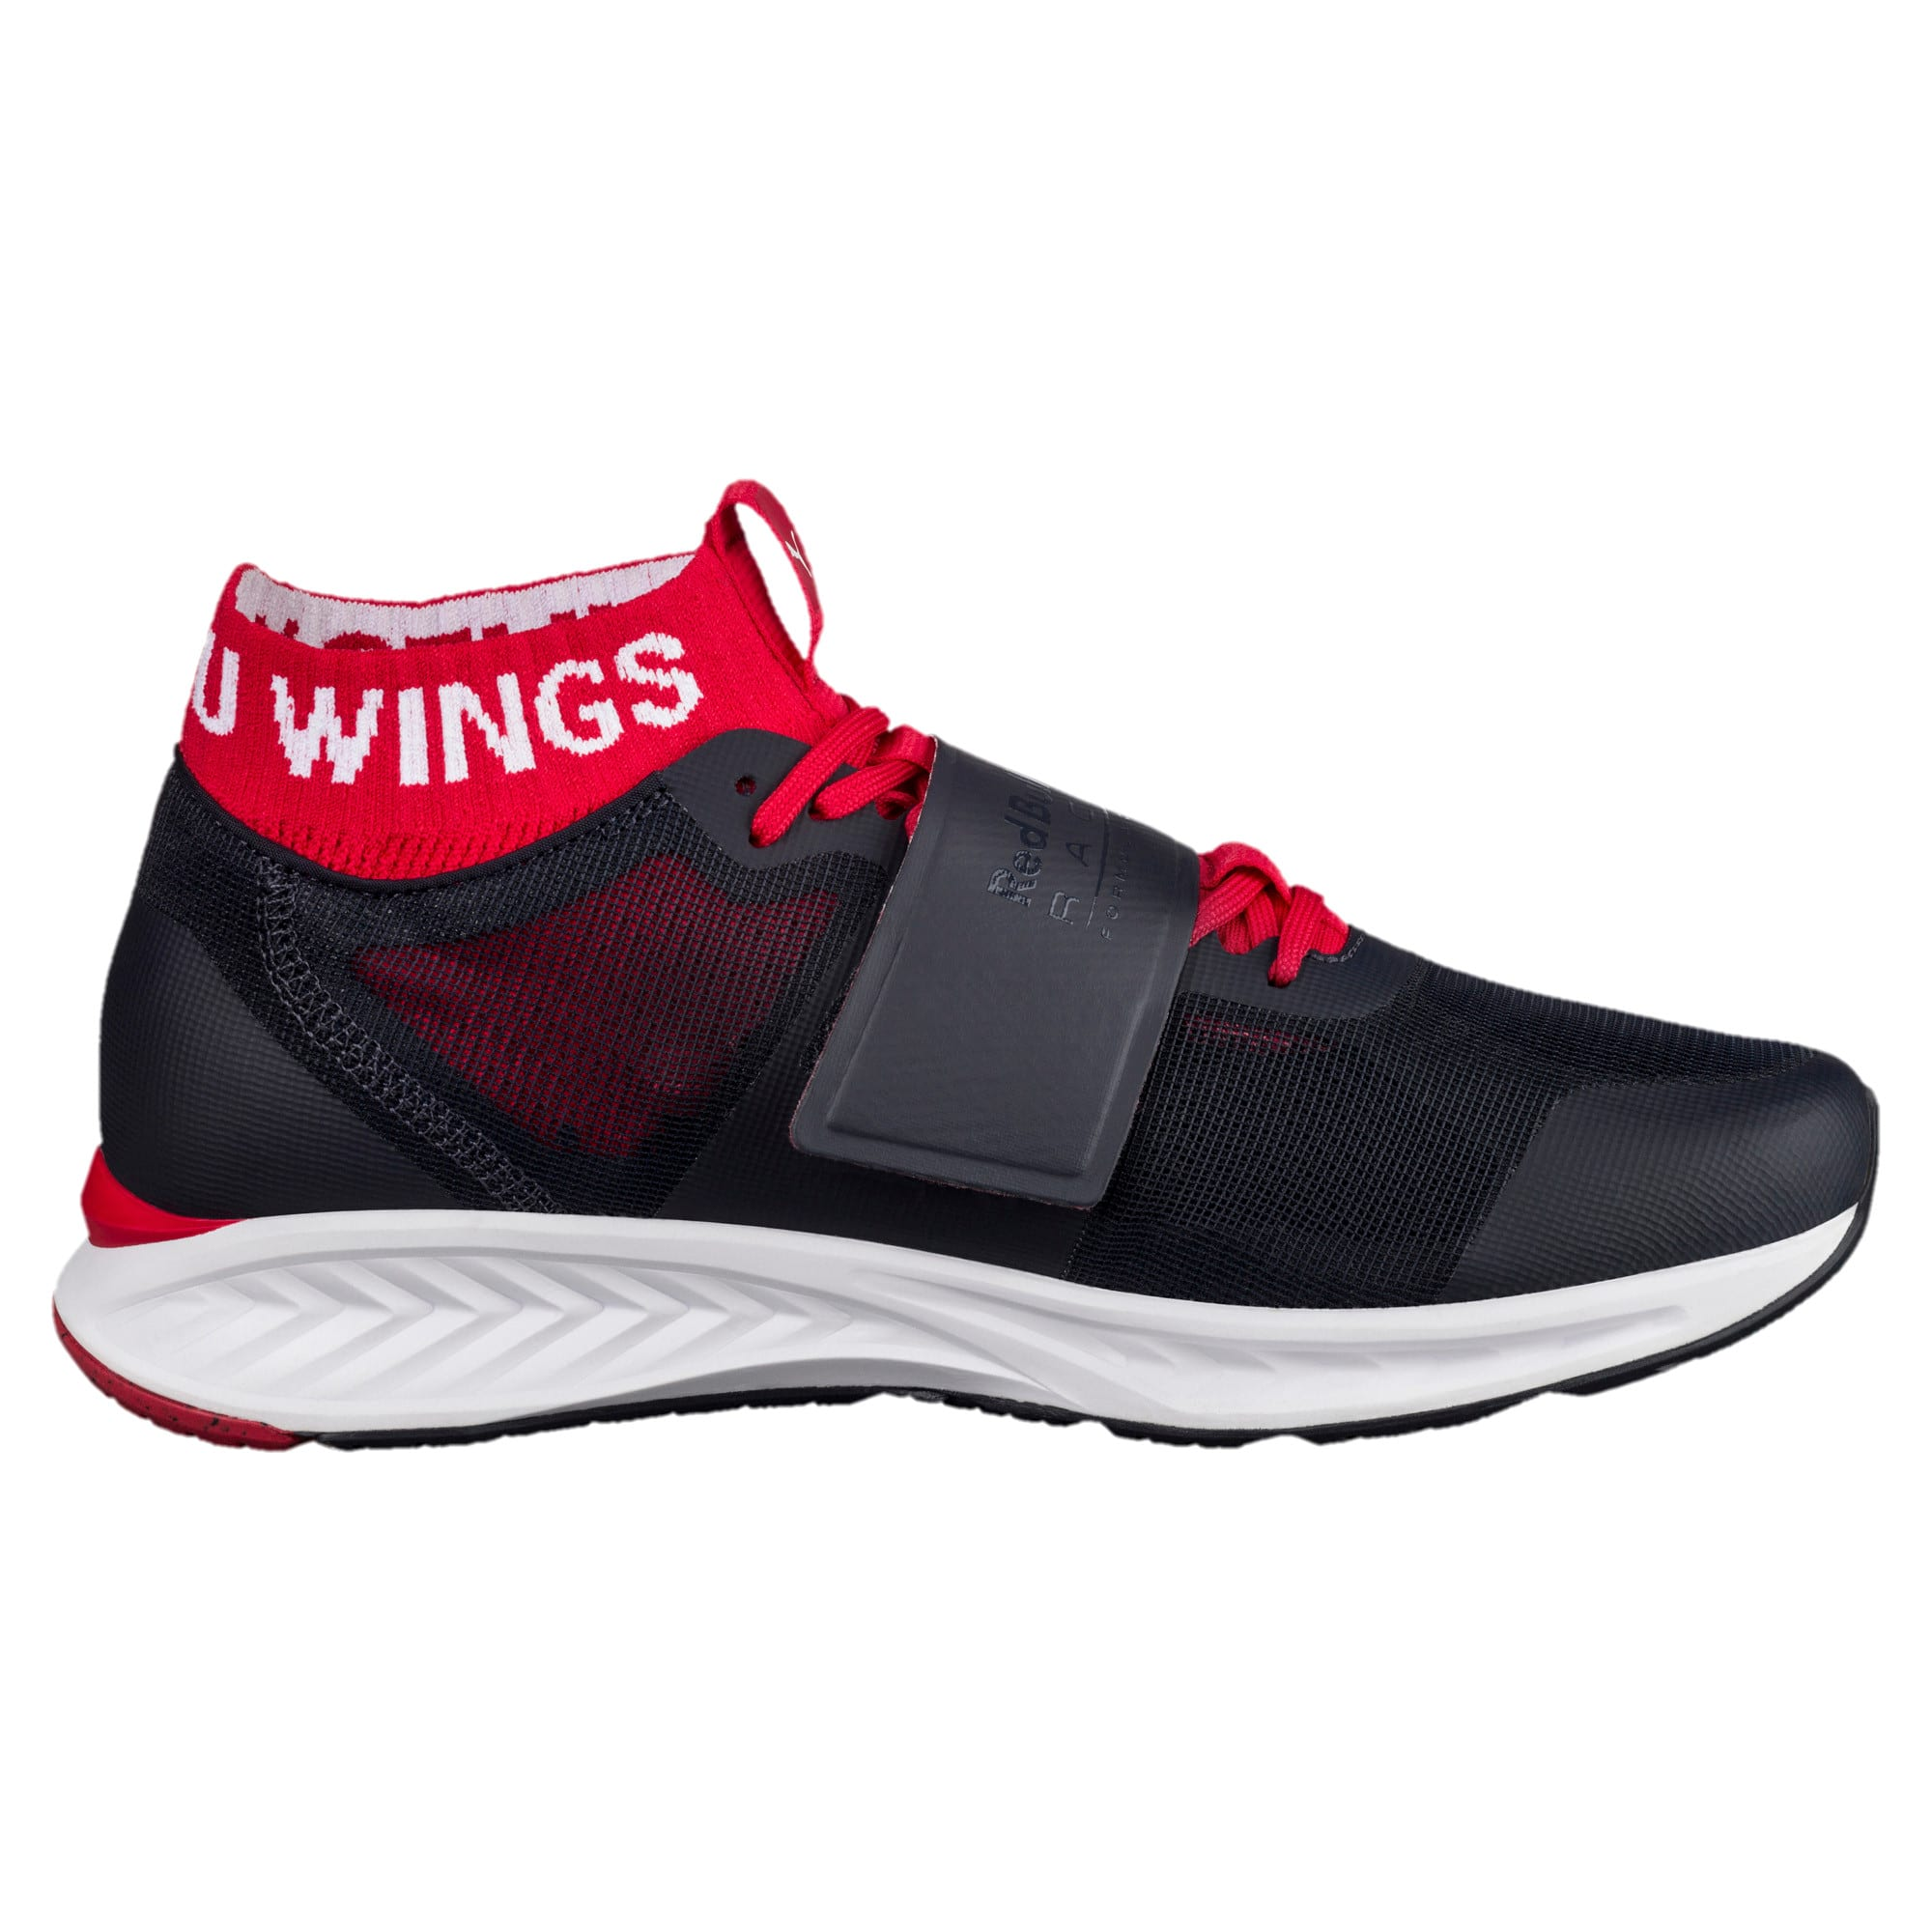 Thumbnail 3 of Red Bull Racing Mechs Ignite V3 Men's Training Shoes, NIGHT SKY-White-Chinese Red, medium-IND